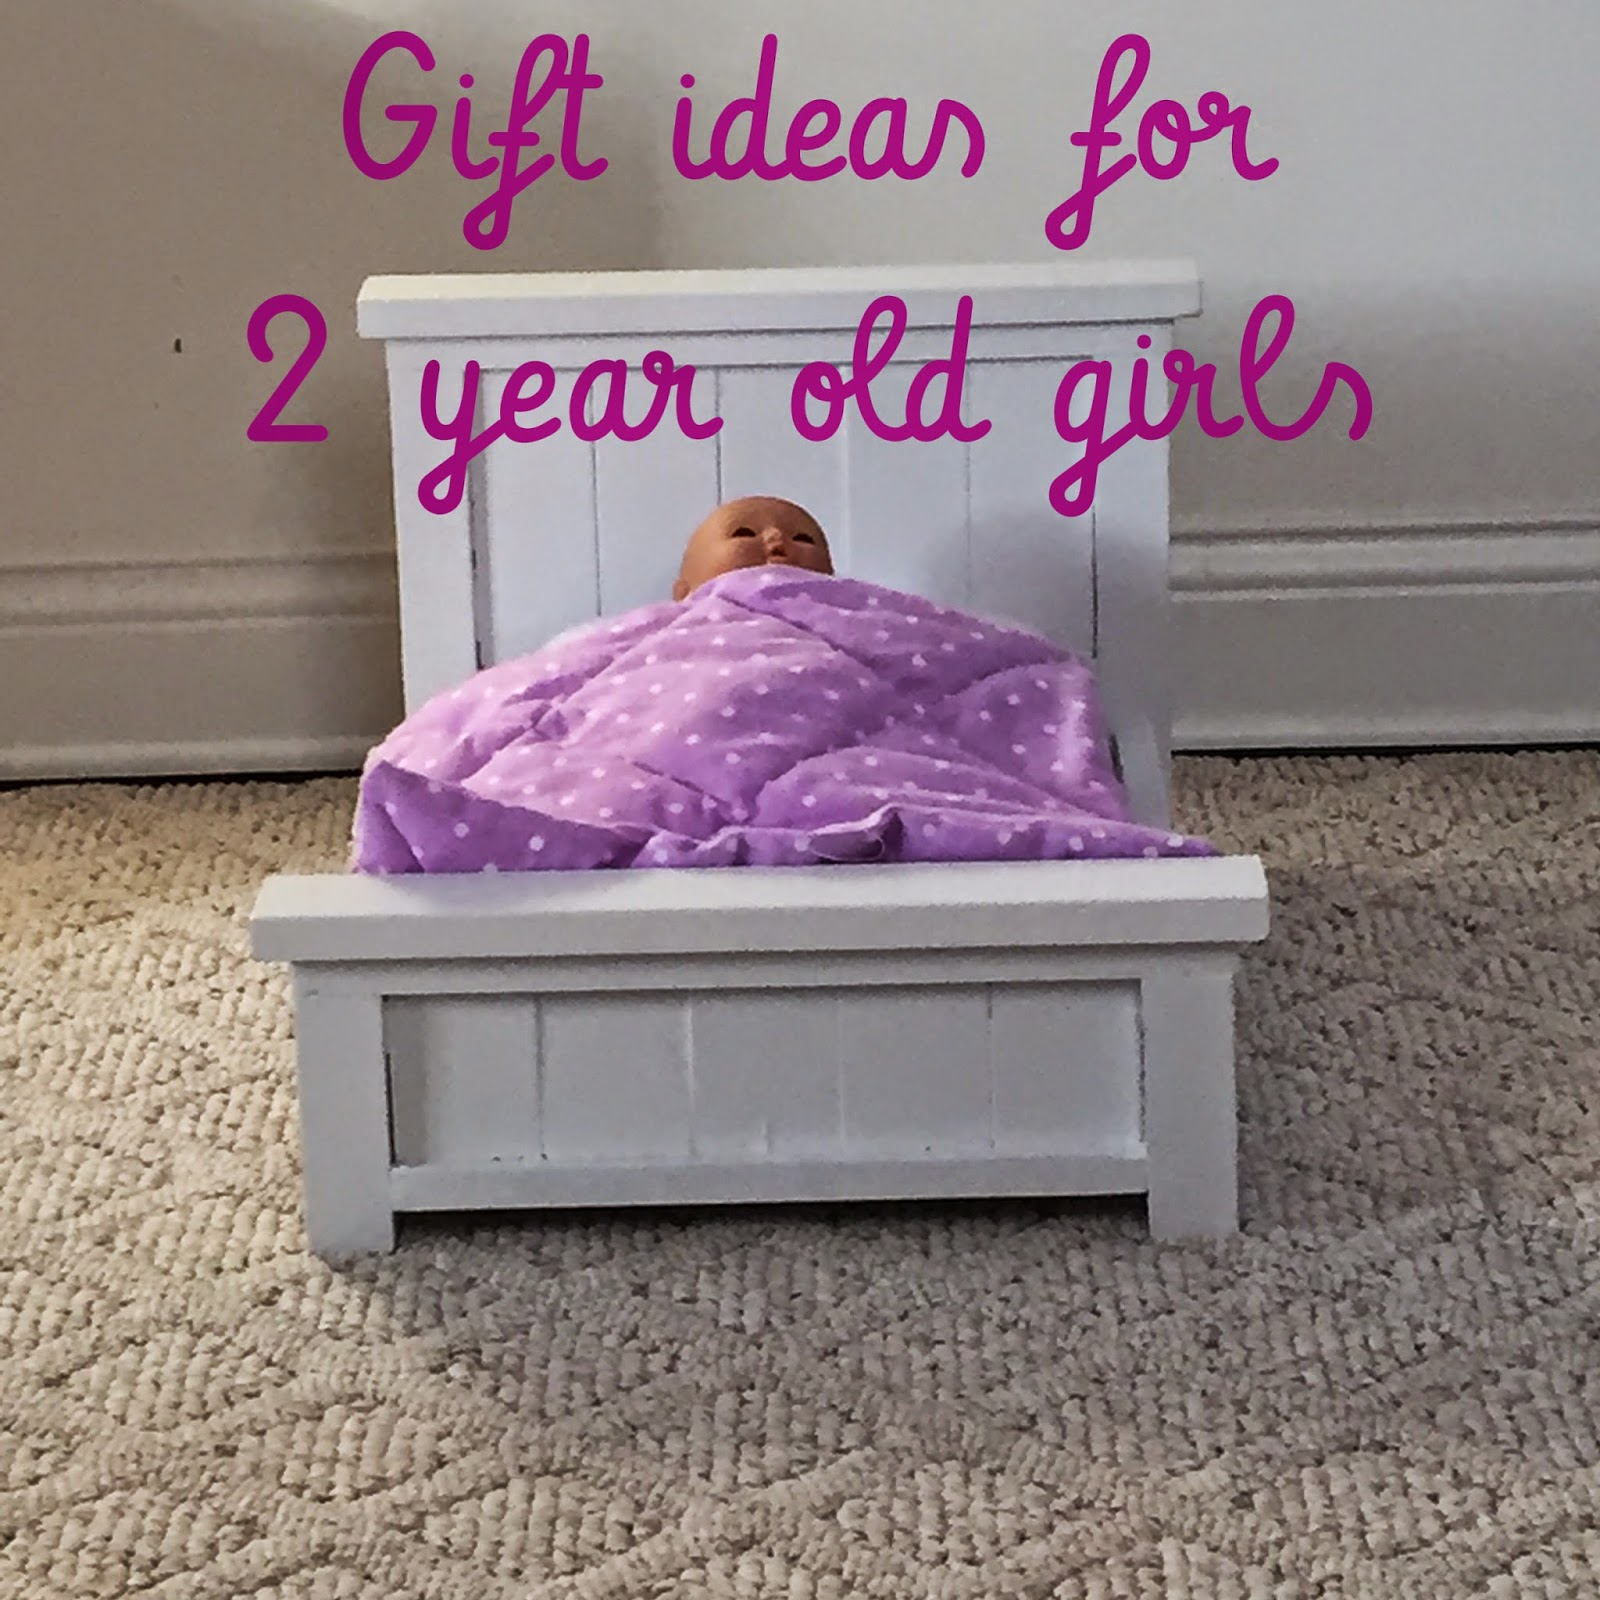 Christmas Ideas For 2 Year Old Girl.Our Delicious Life Gift Ideas For 2 Year Old Girls